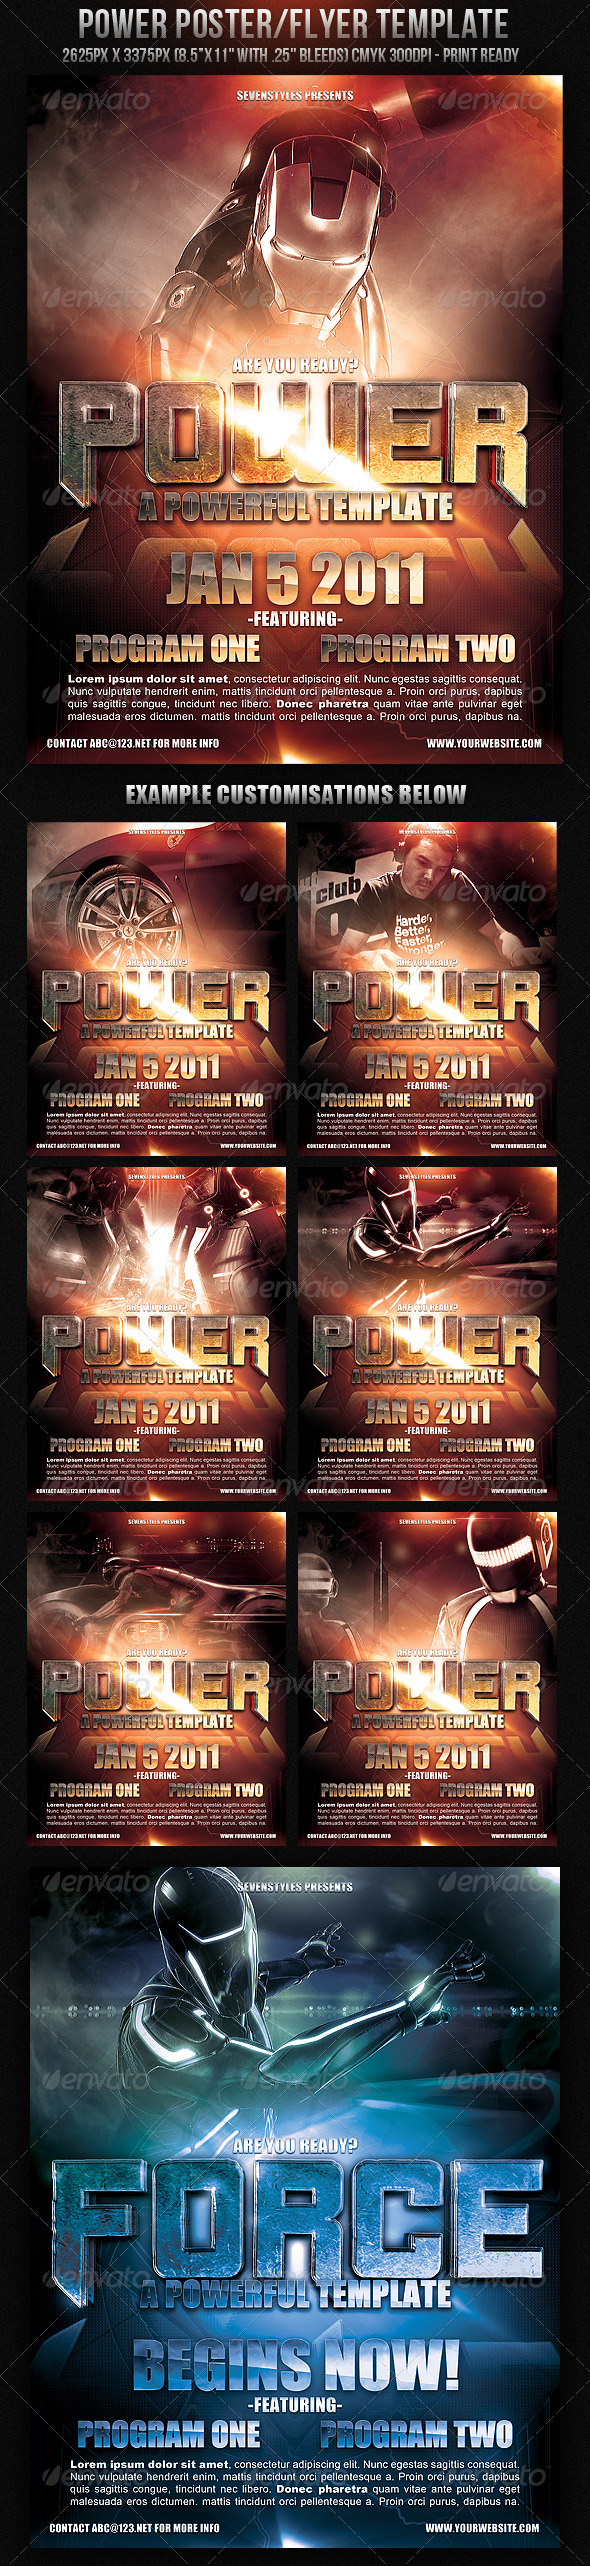 Power PosterFlyer Template - GraphicRiver Item for Sale